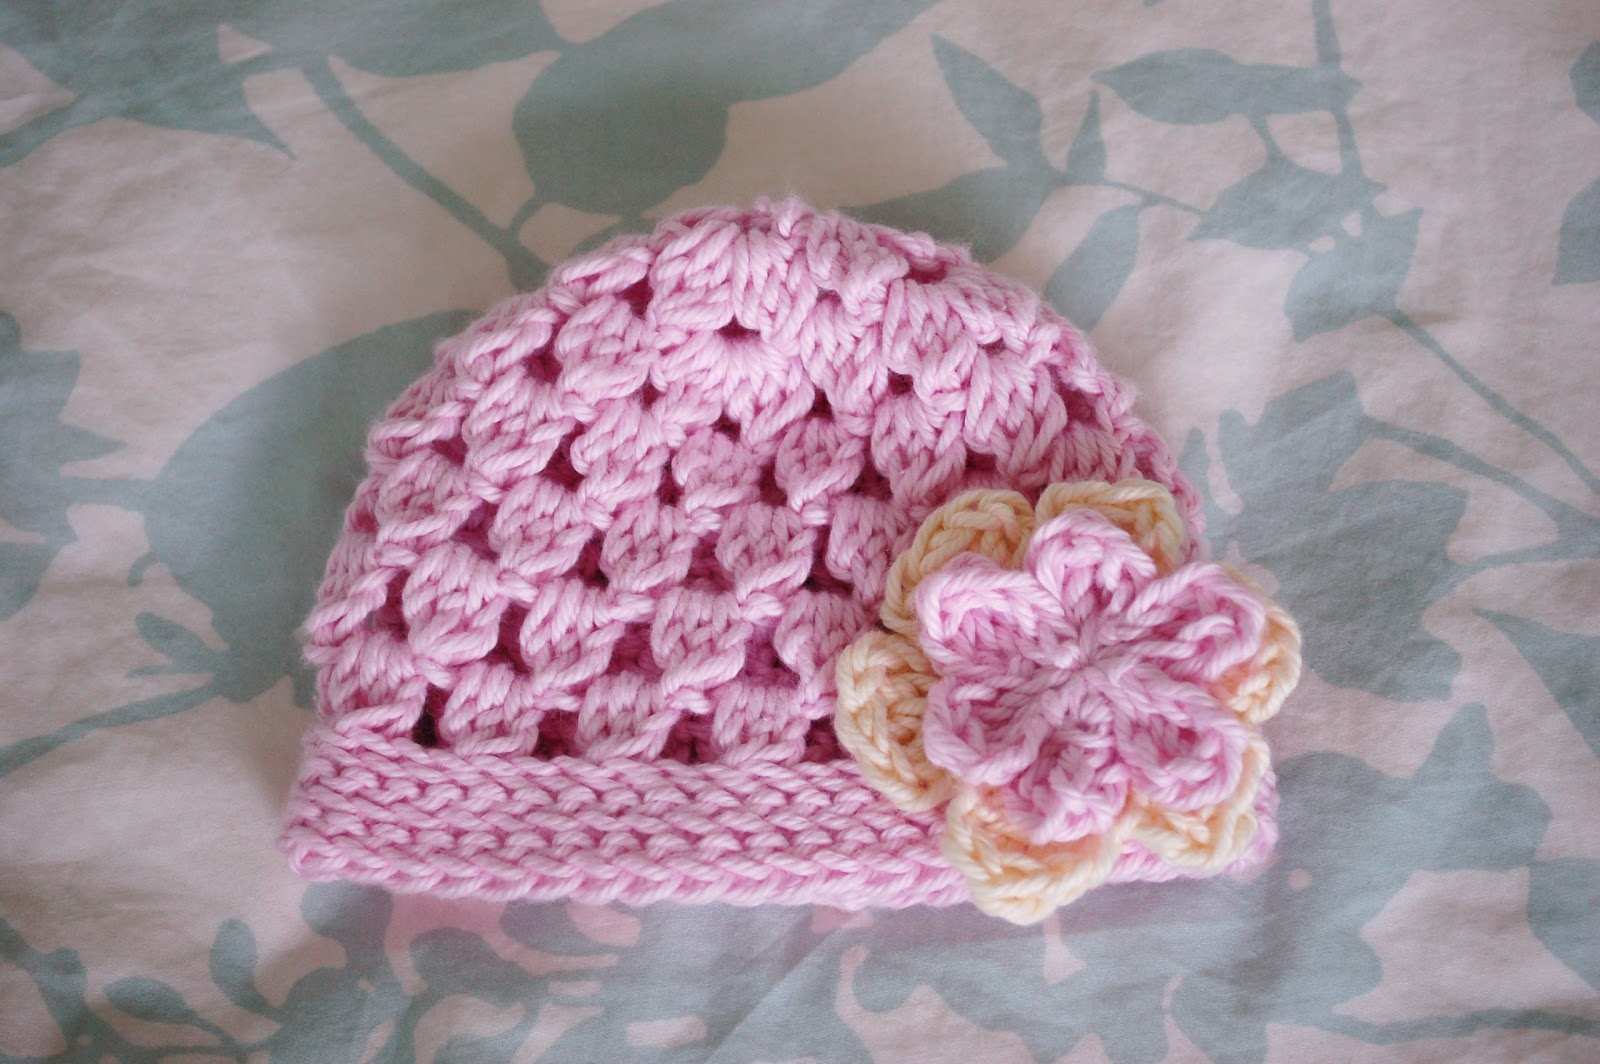 Crochet Baby Hat Patterns 6 Months : Alli Crafts: Free Pattern: Cluster Hat - Newborn